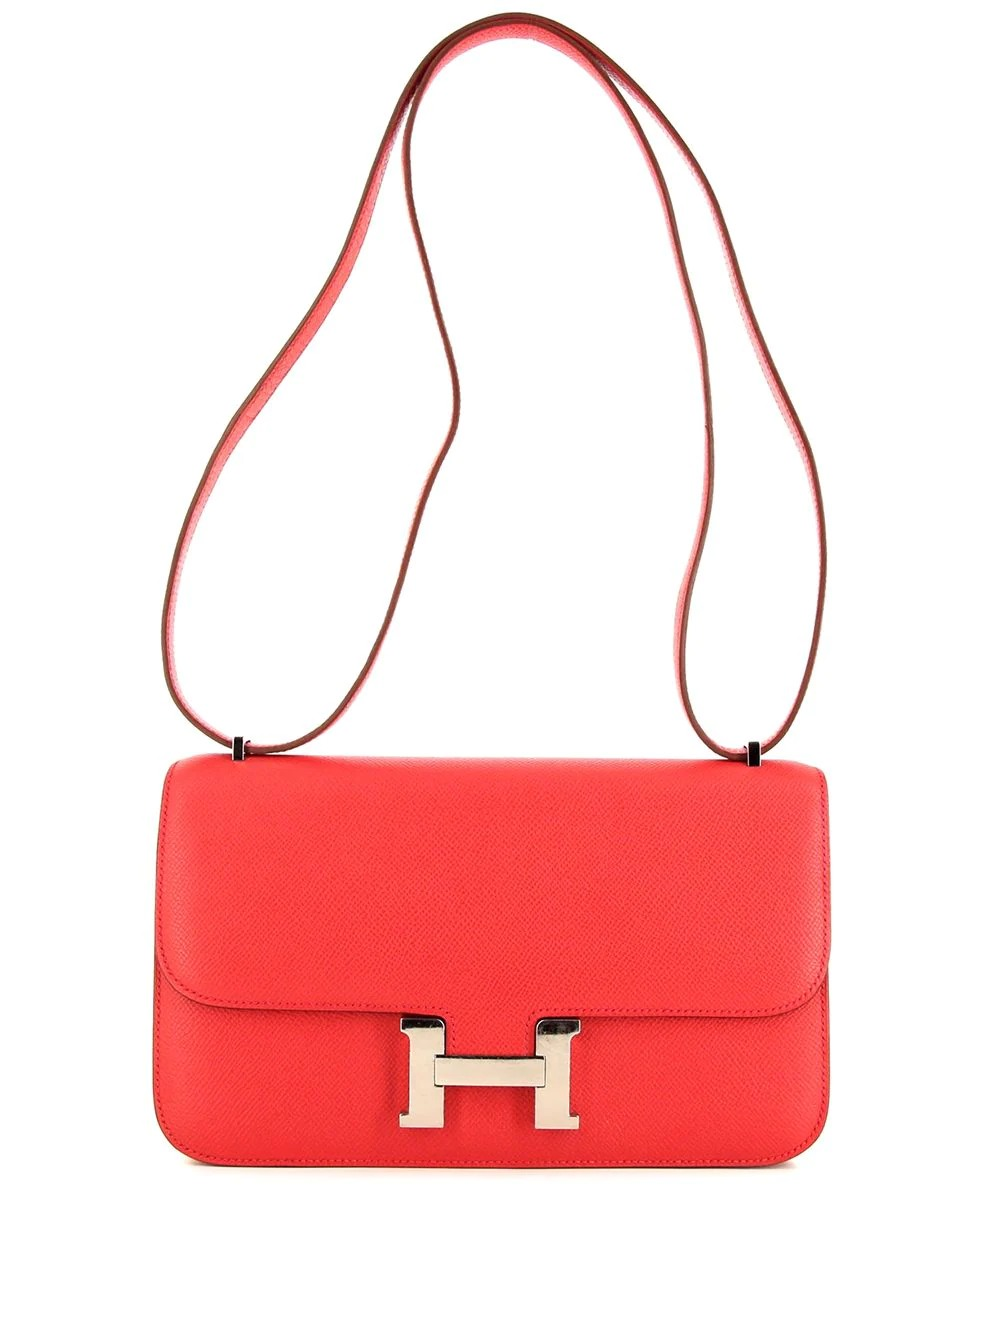 hermes-constance-elan-bag-red-farfetch